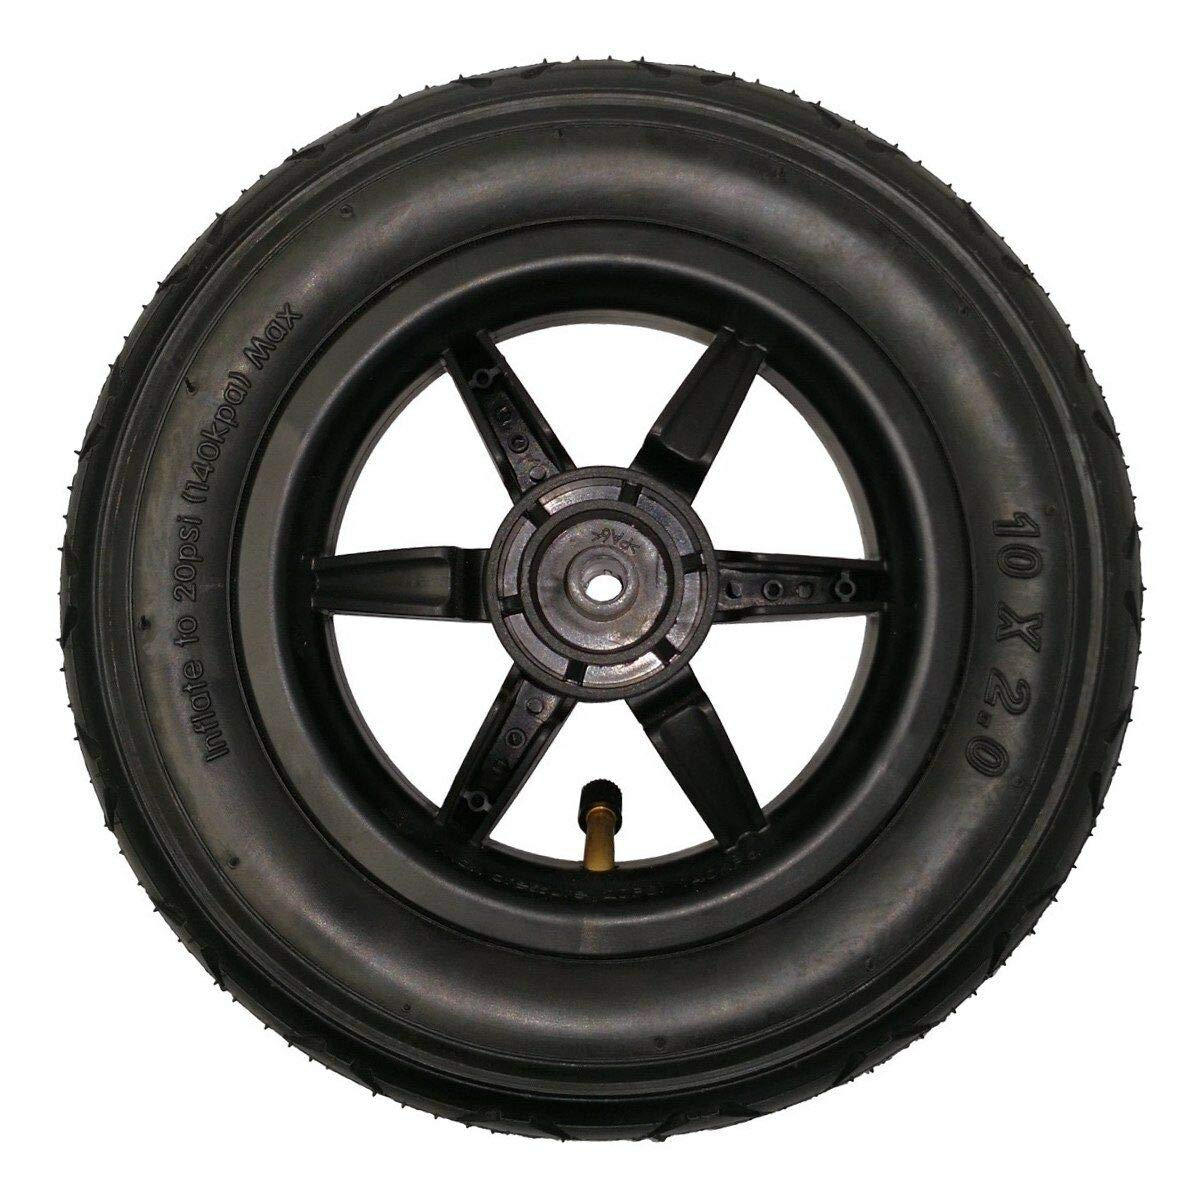 Mountain Buggy Duet 10'' Complete Front Wheel (for V2.5 Duet Models Manufactured Between 2015 and 2017)